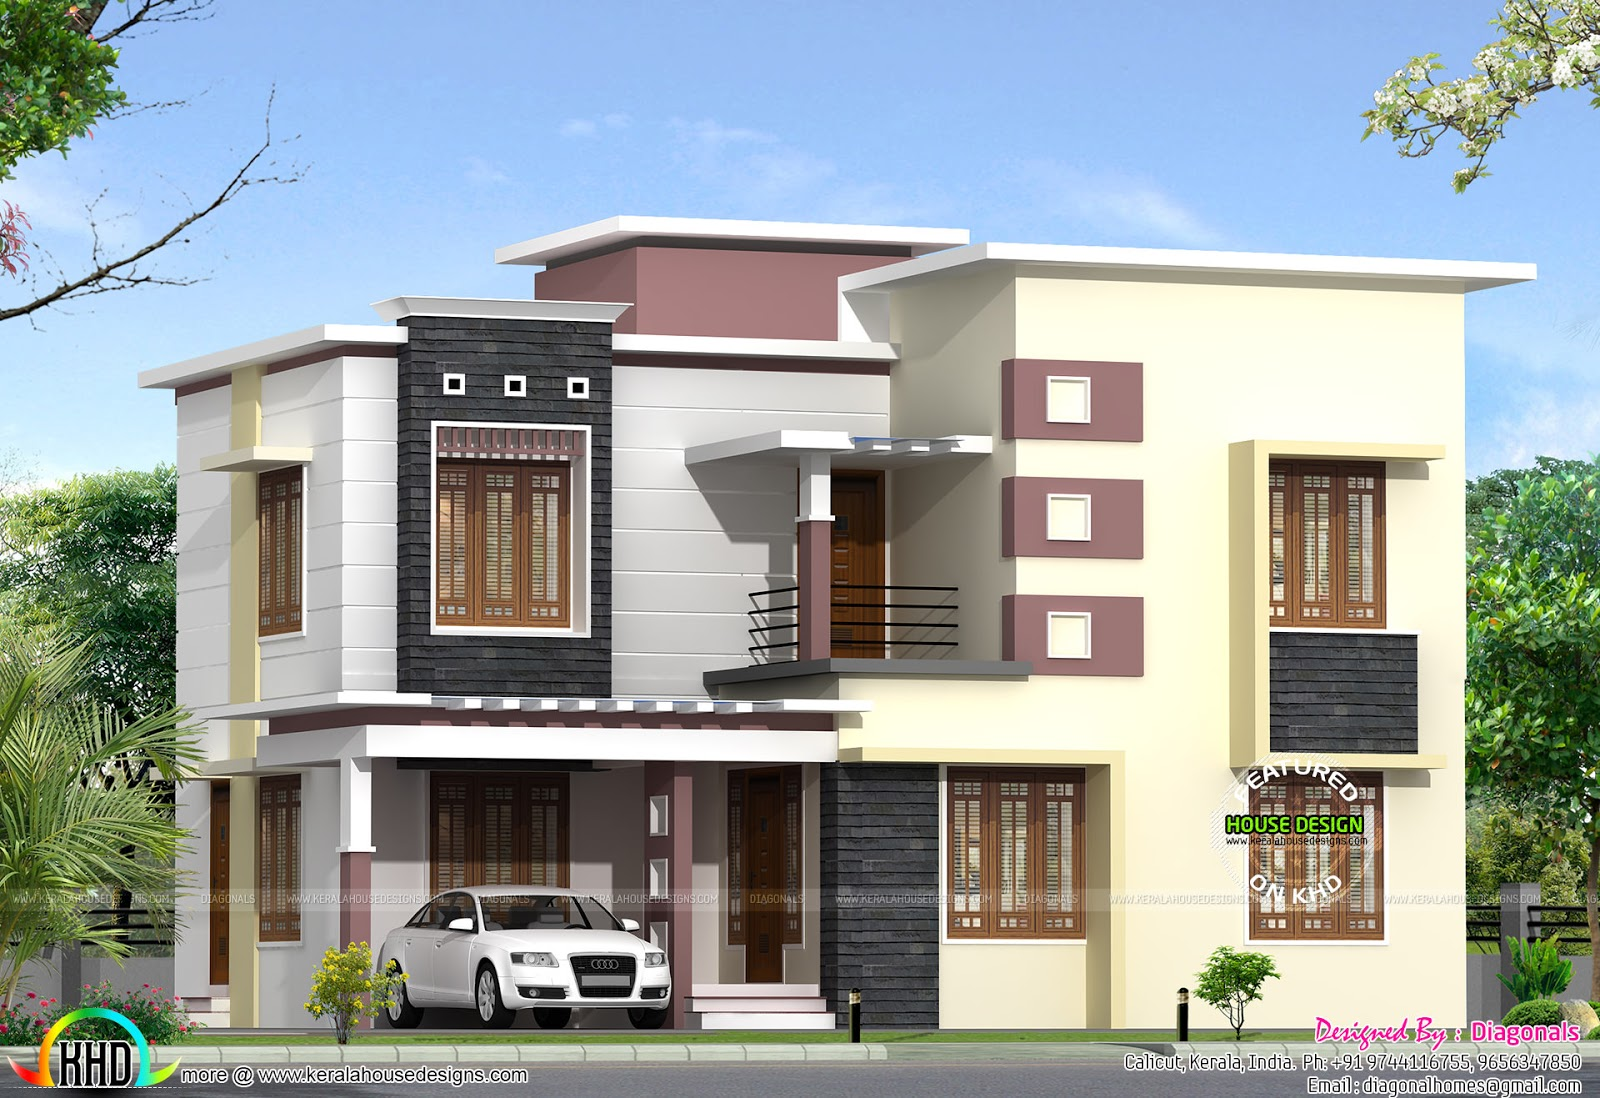 5 Bedroom One Story Floor Plans Modern Box Type 2068 Sq Ft Home Kerala Home Design